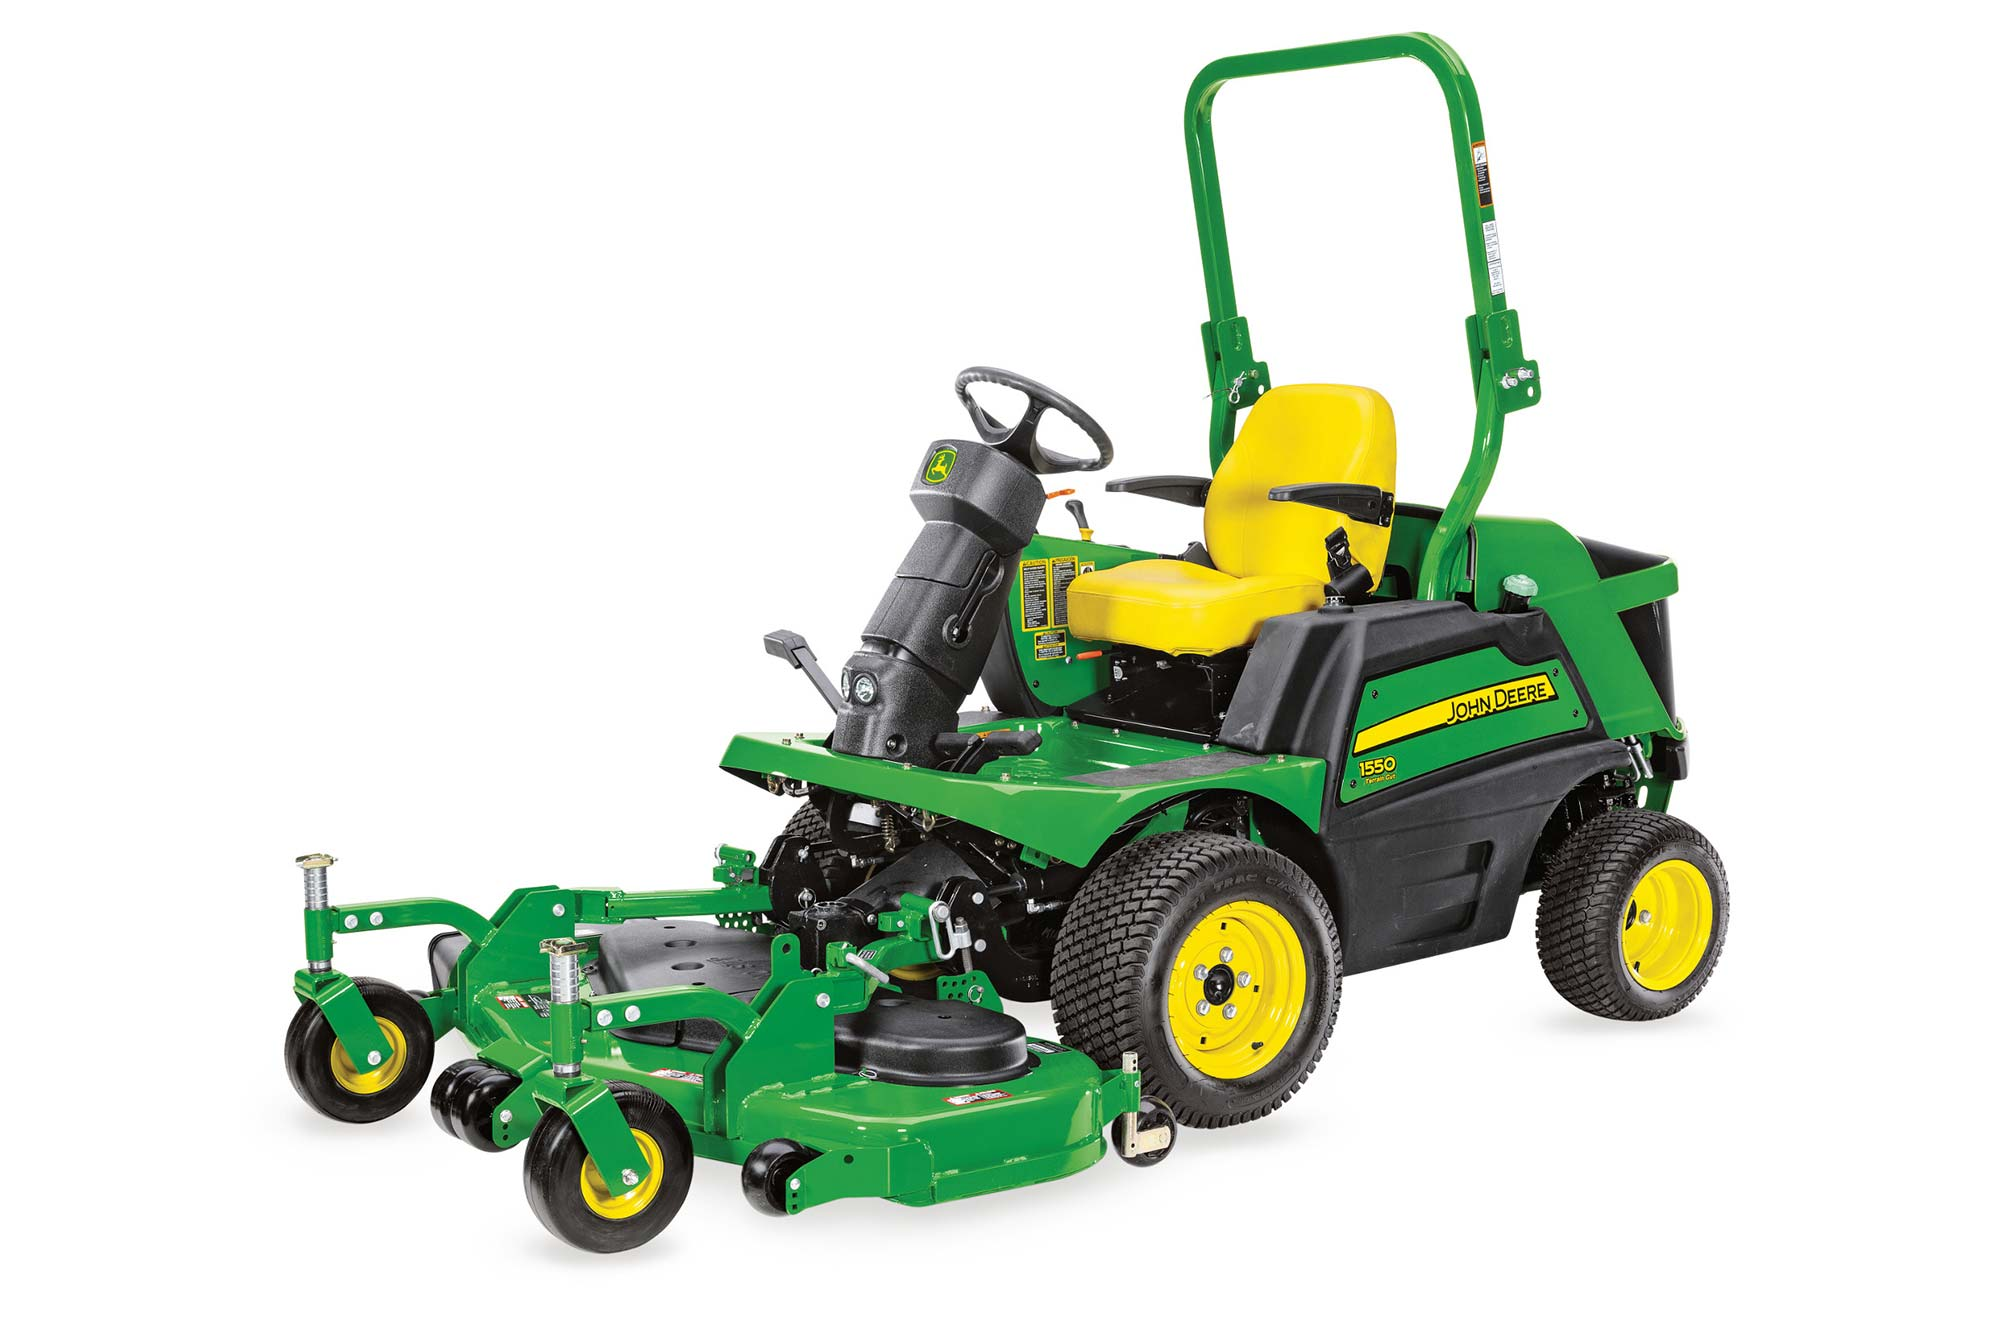 John Deere 1550 Powercut